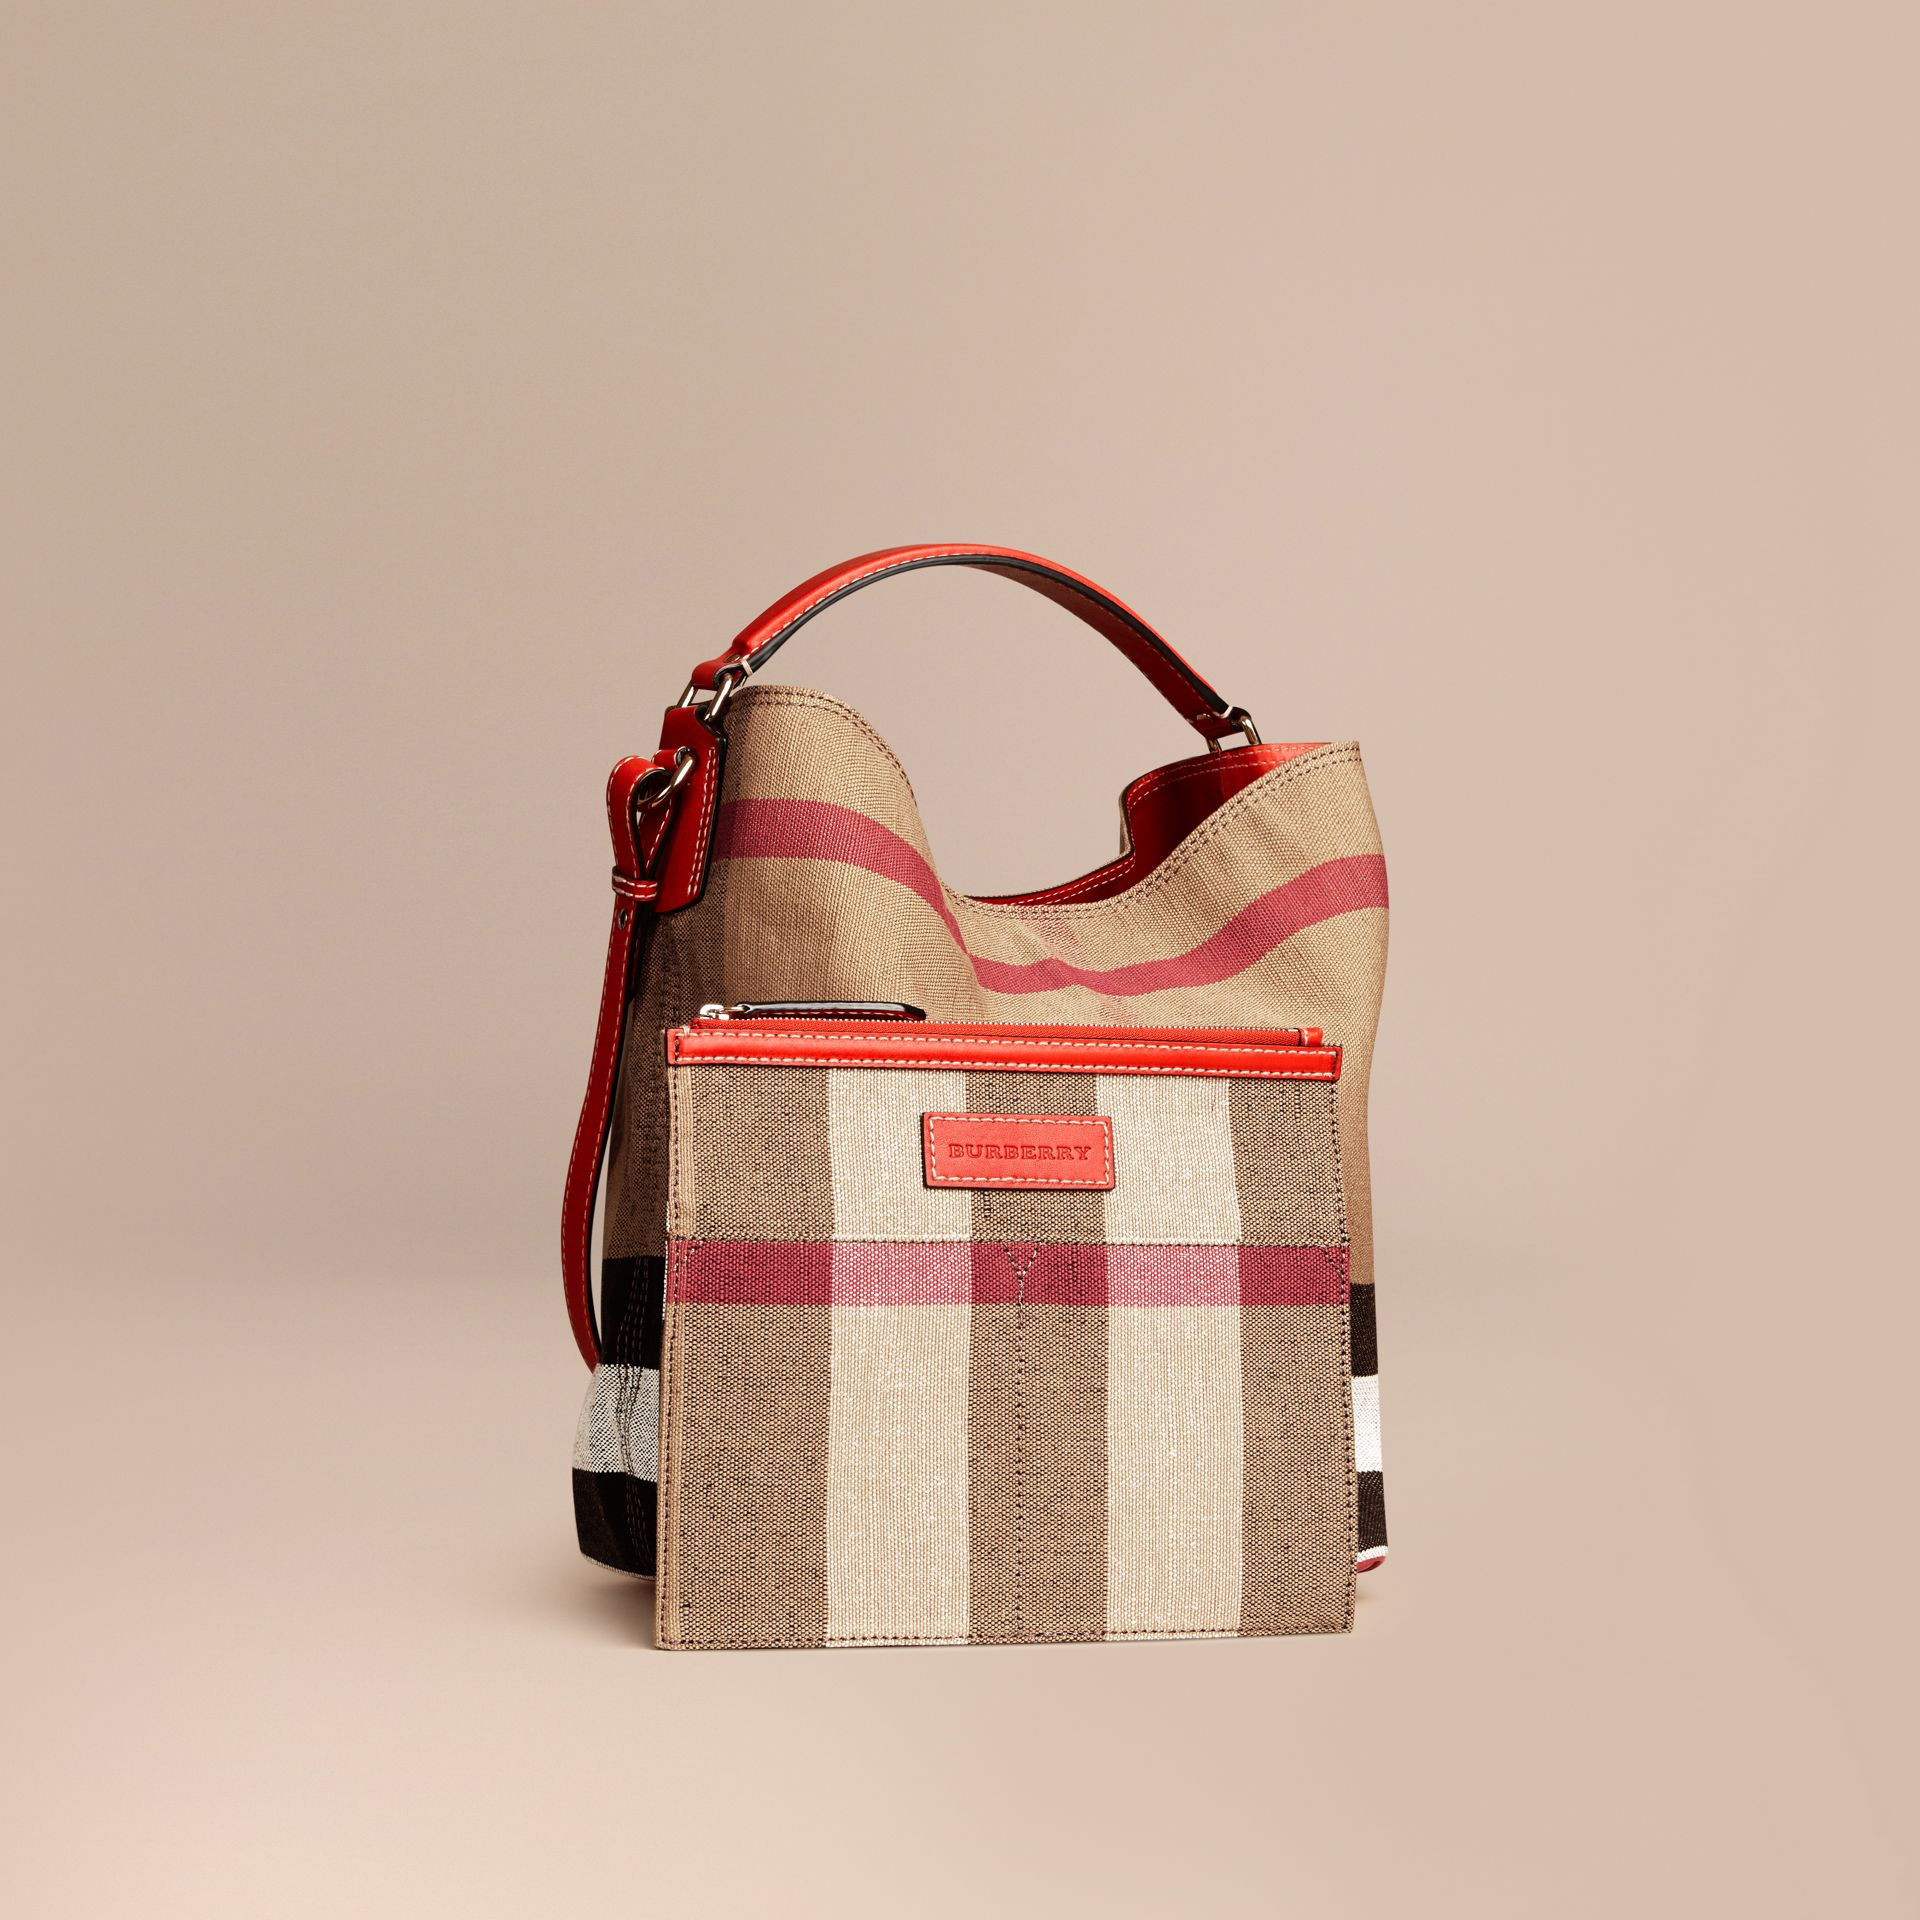 Medium Canvas Check Hobo Bag in Cadmium Red - Women | Burberry - gallery image 4